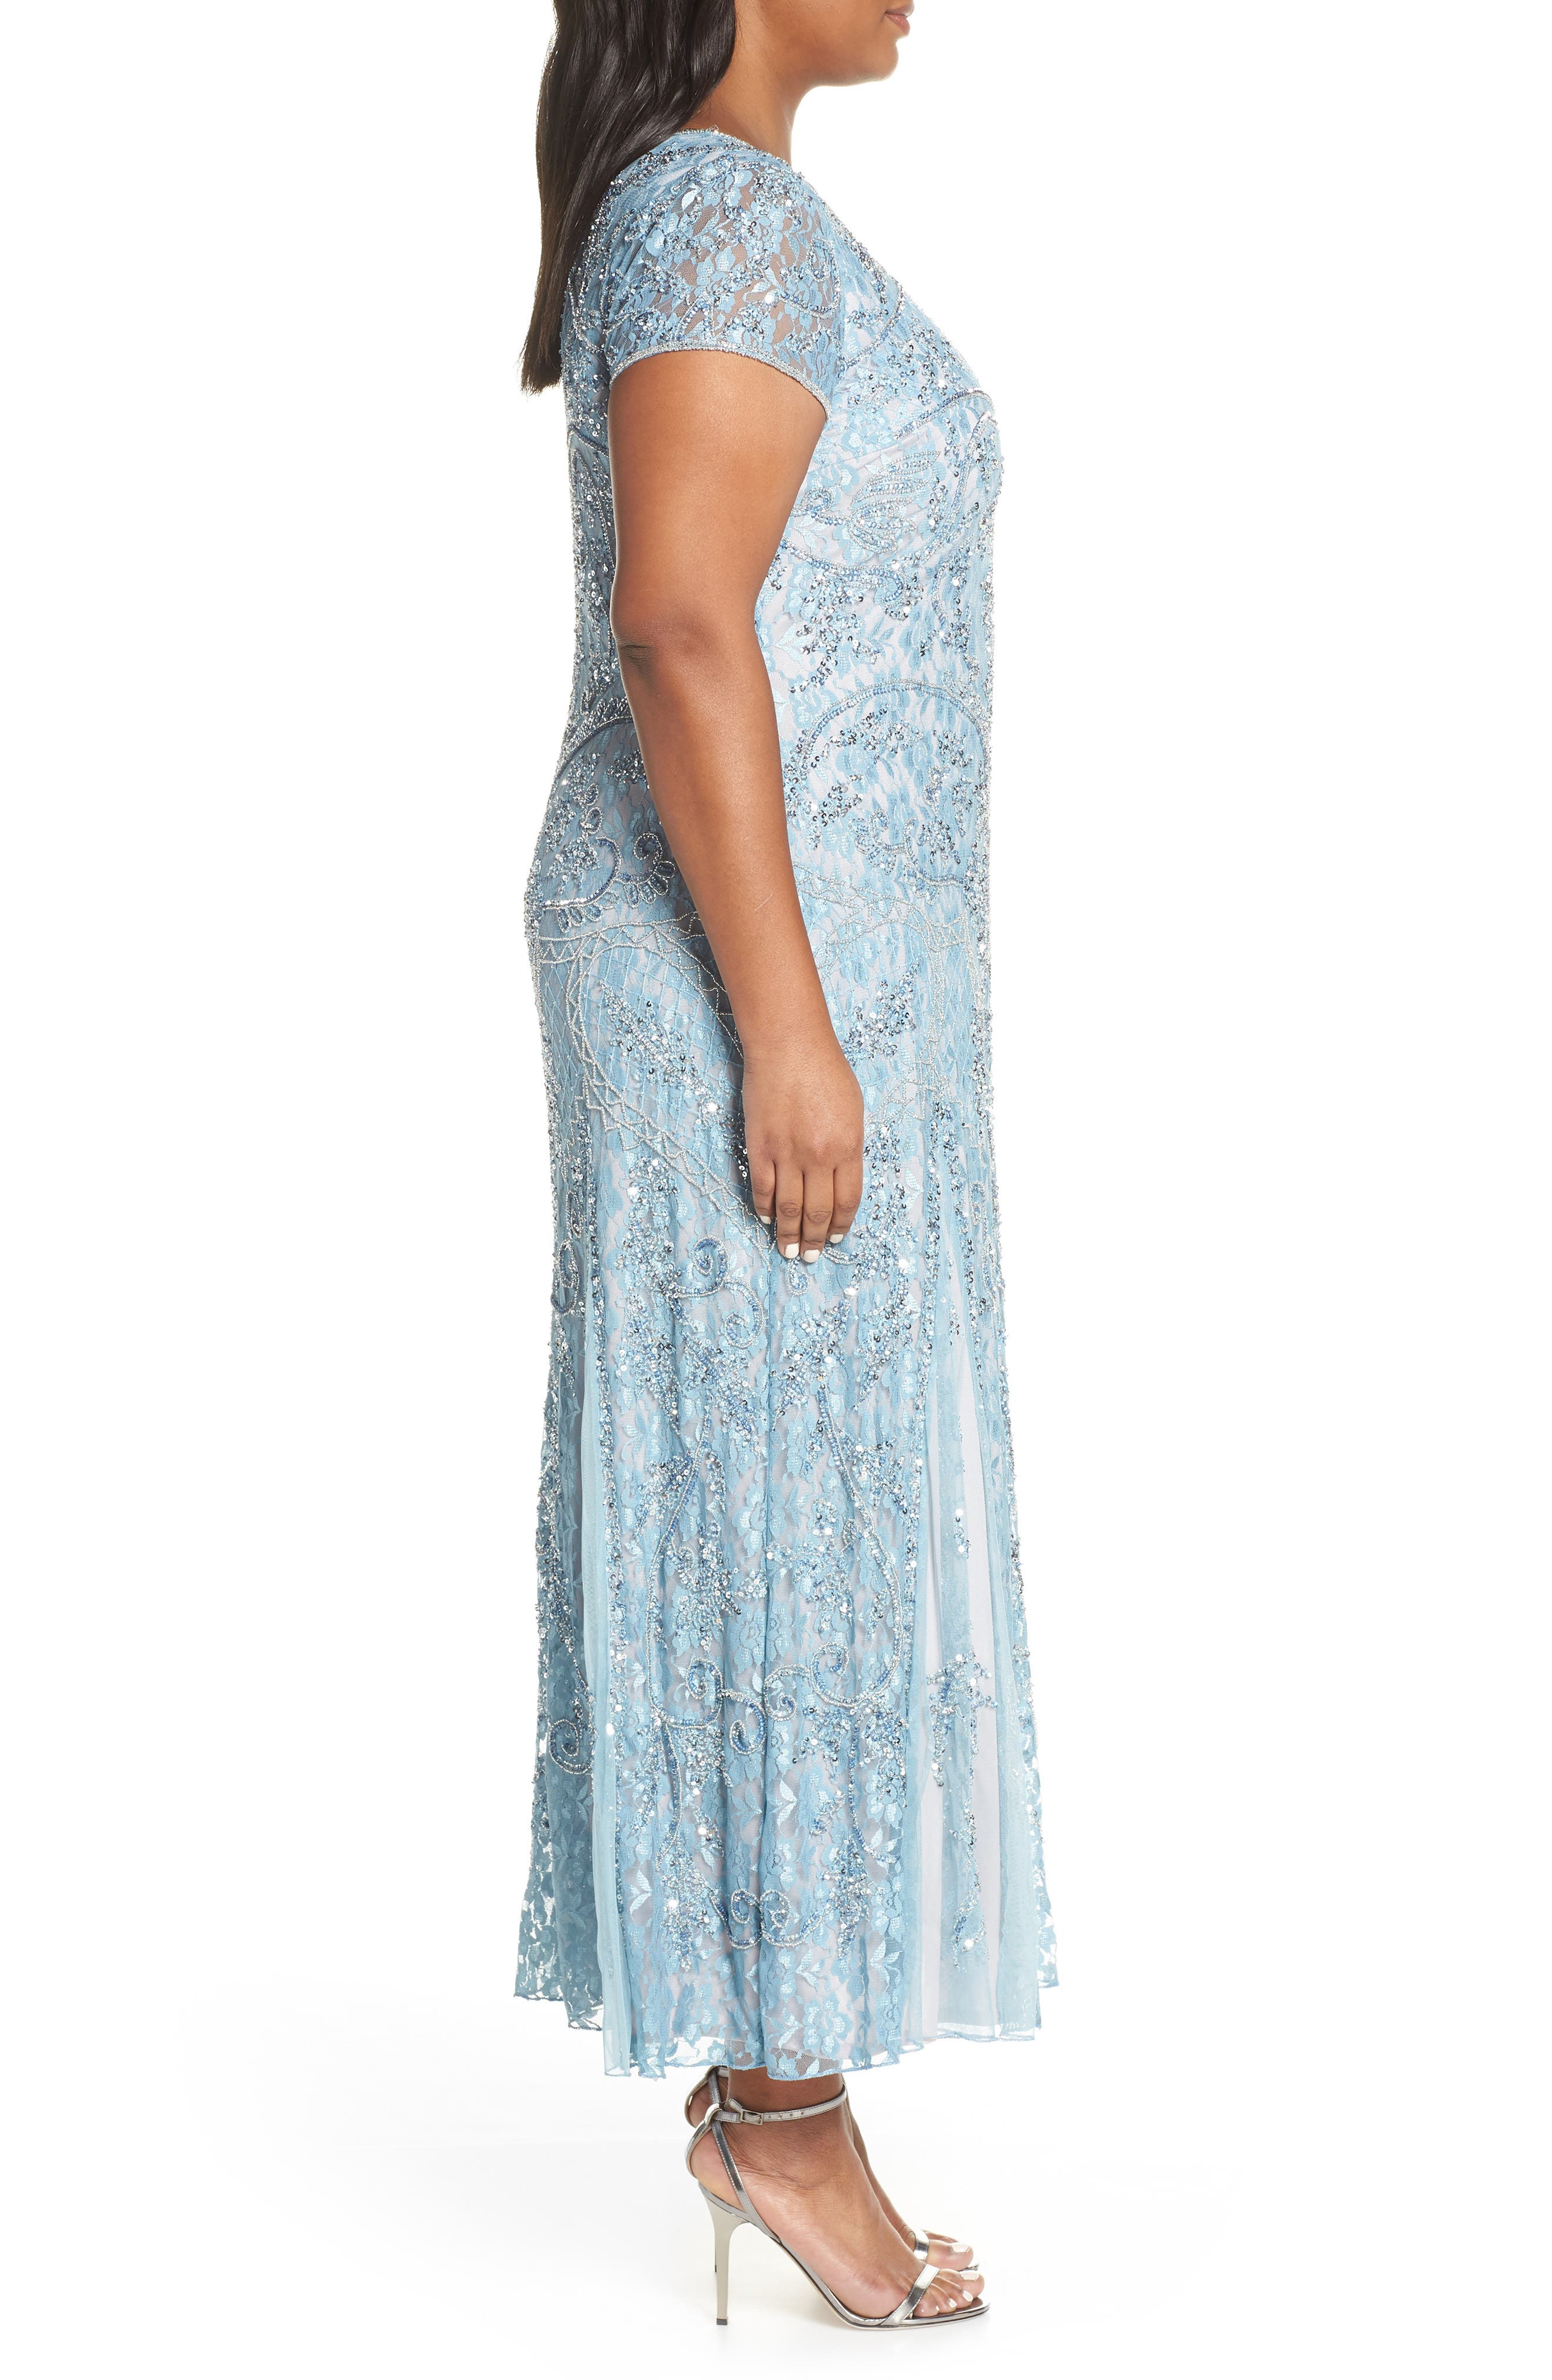 PISARRO NIGHTS,                             Embellished Lace A-Line Dress,                             Alternate thumbnail 3, color,                             SKY BLUE